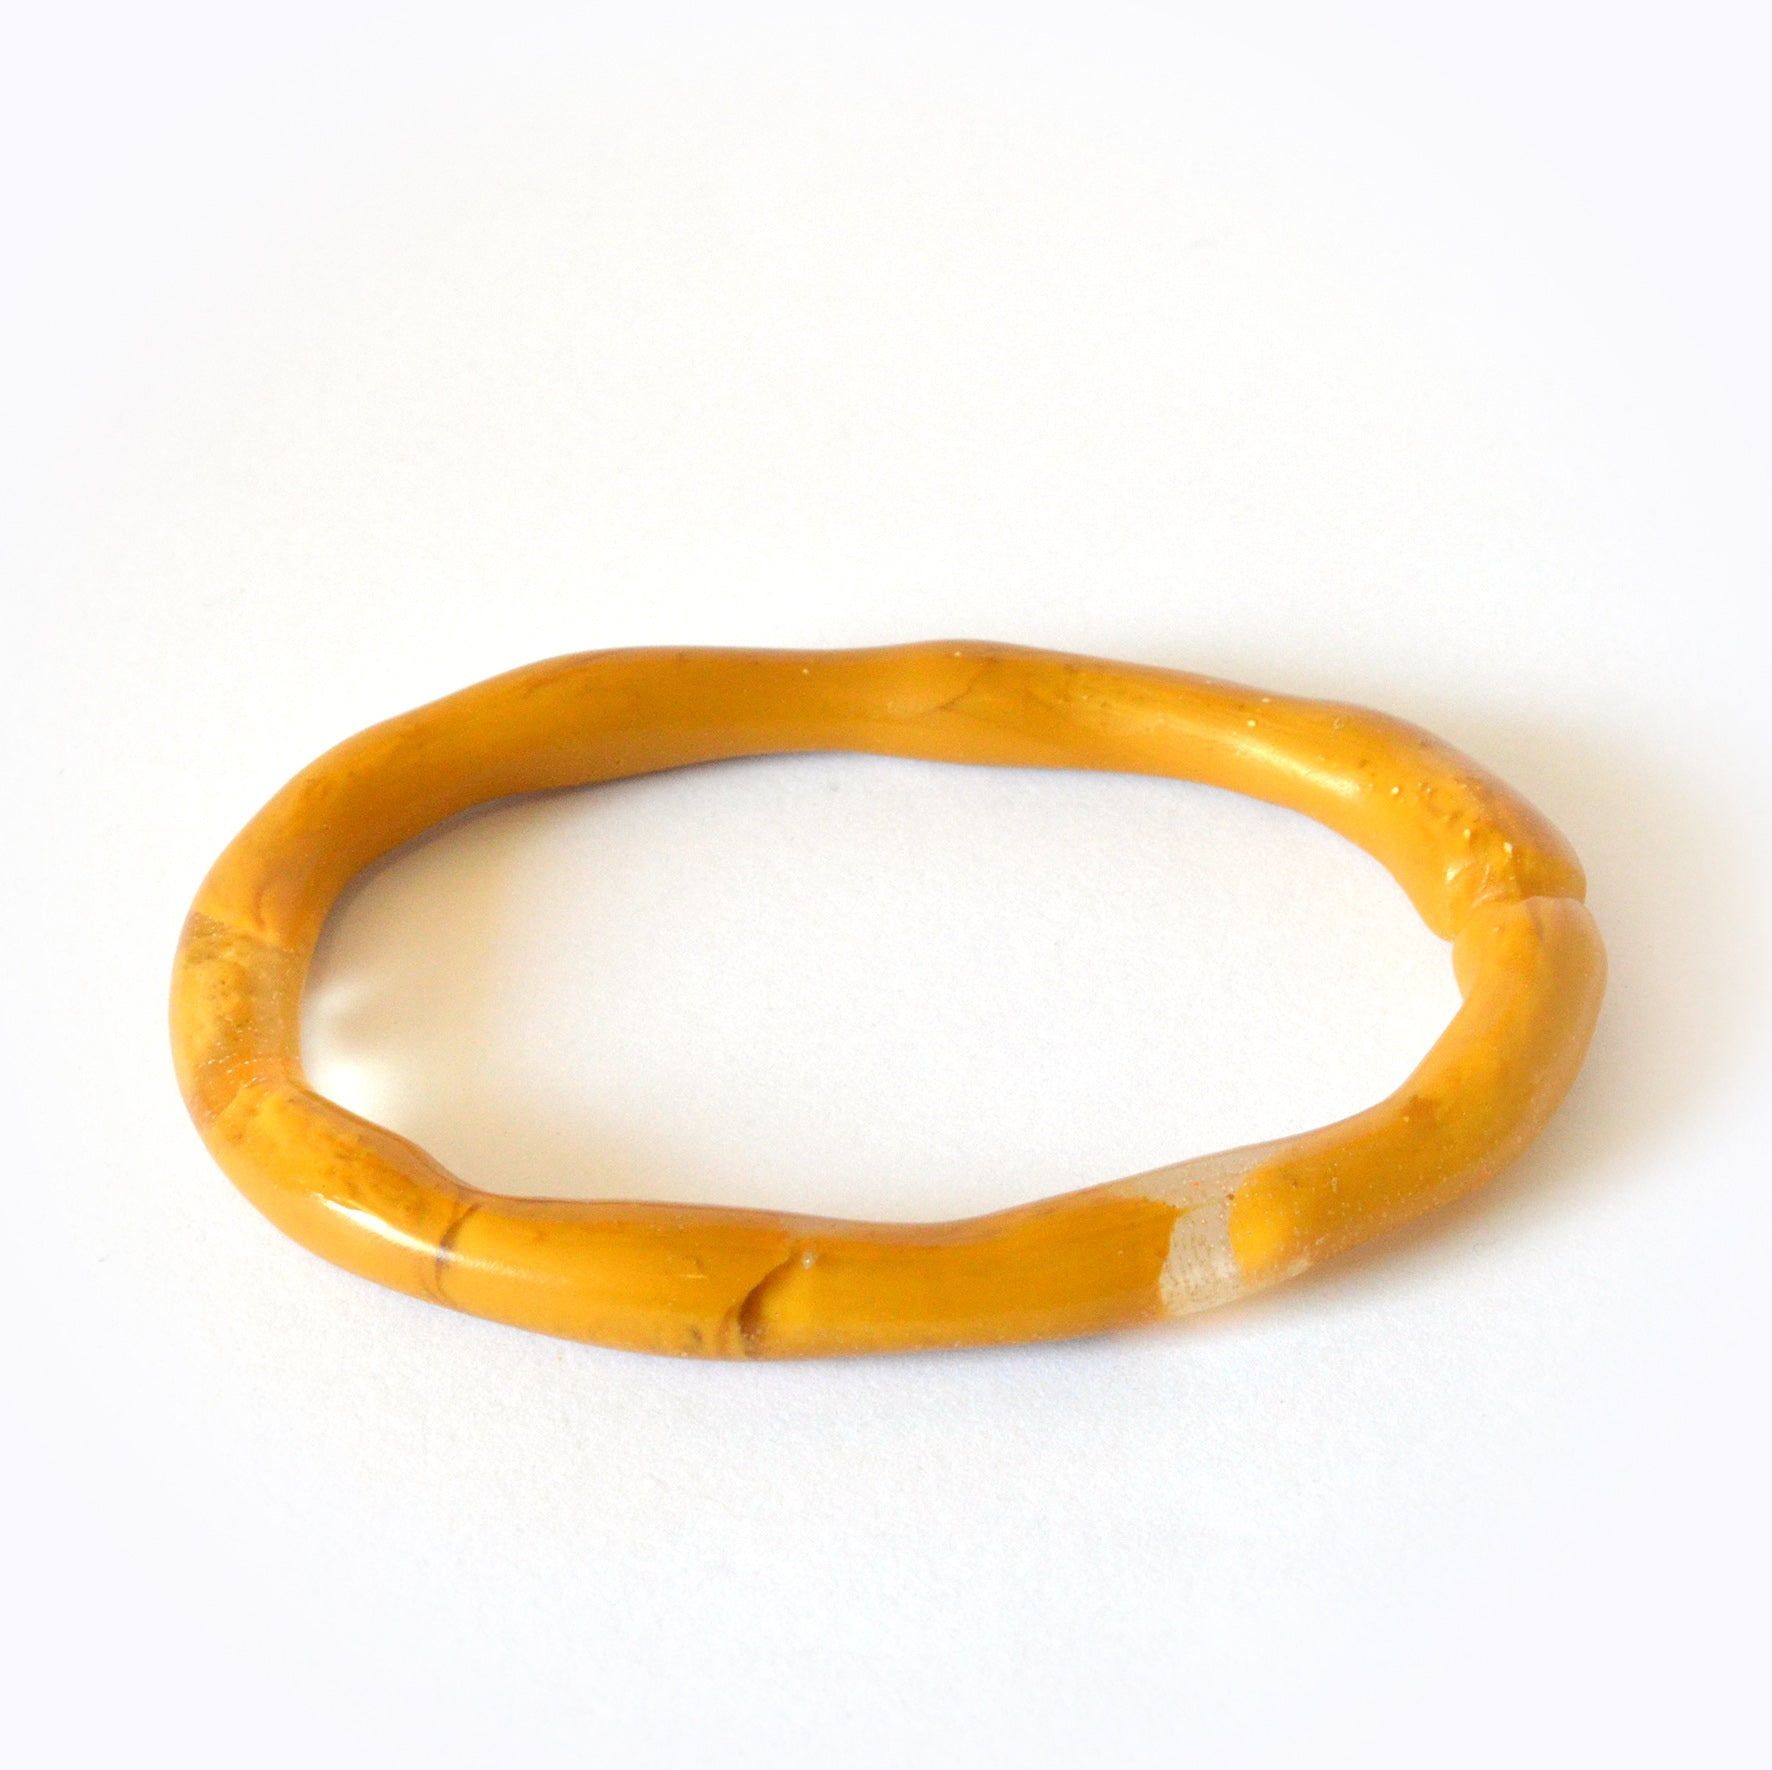 Oval Organic Bangle-Large Size